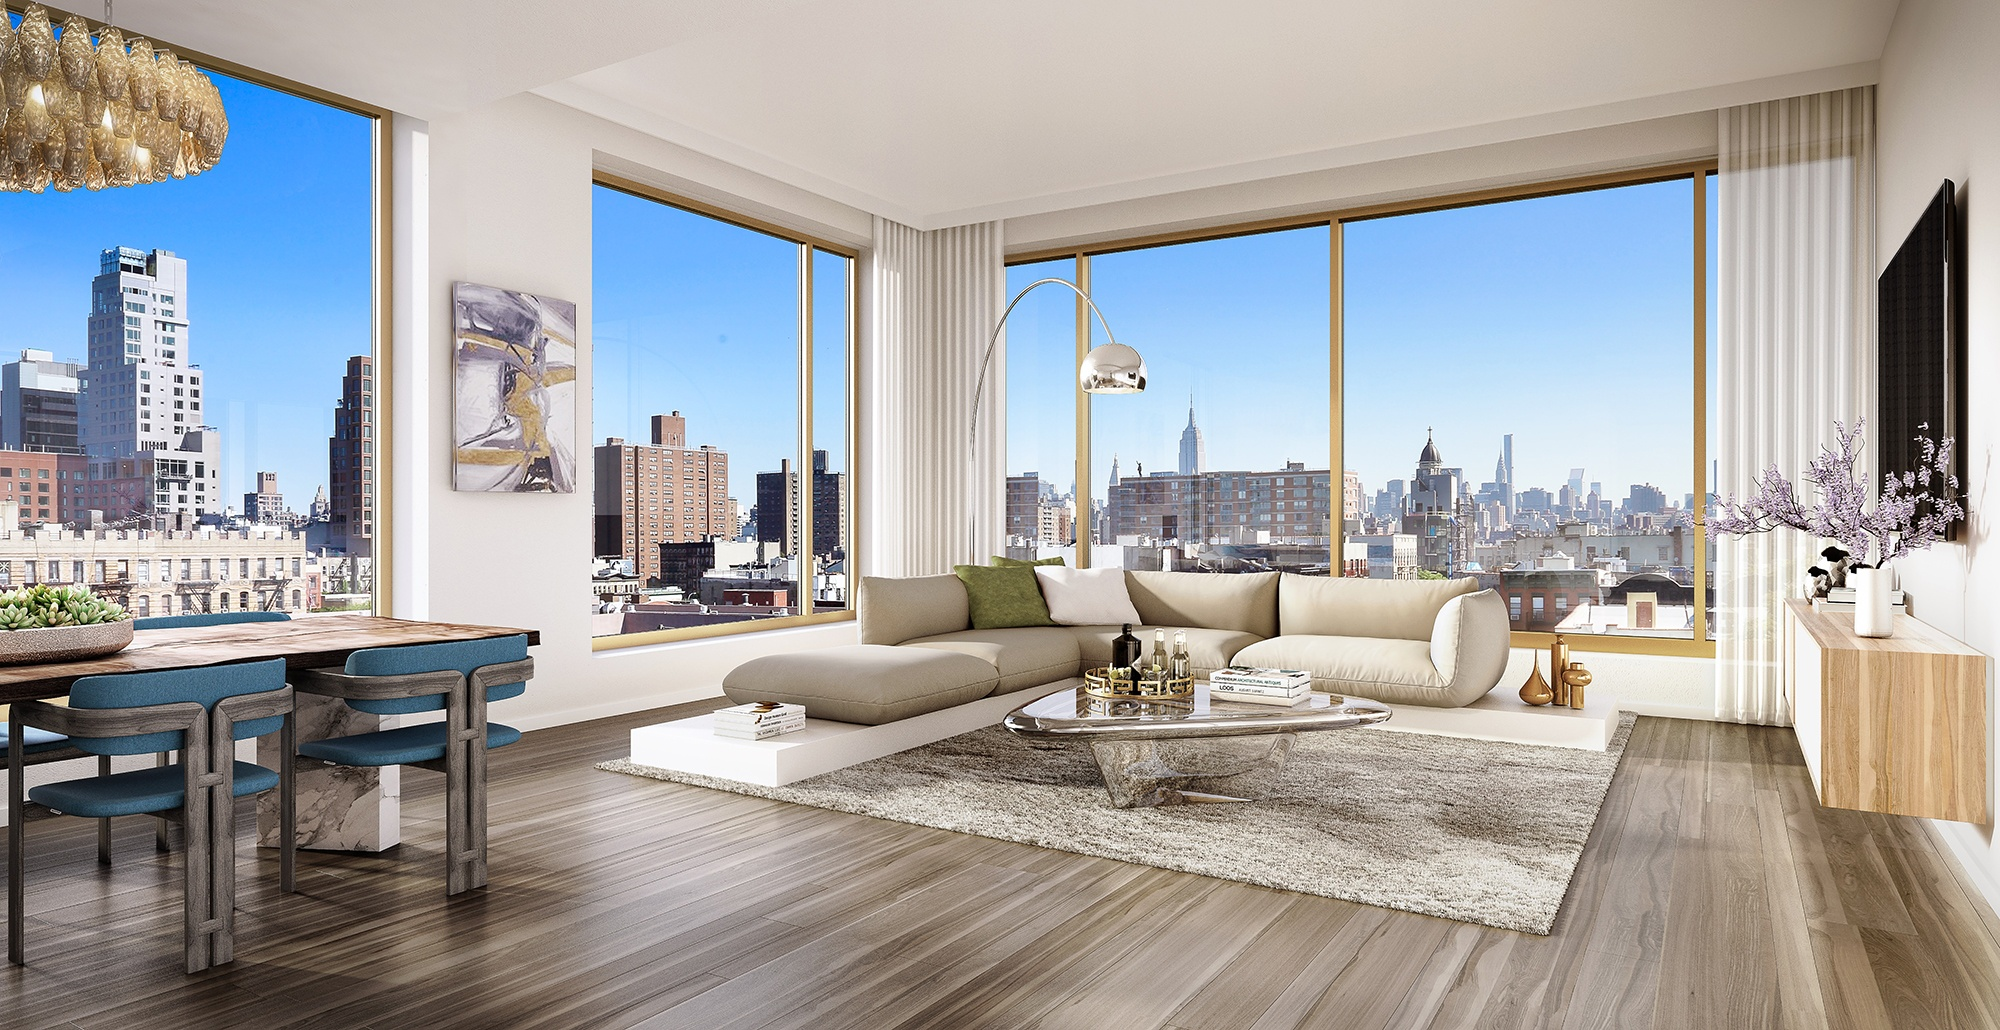 Corner units provide views of the cultural crossroads of SoHo, NoHo, the Lower East Side, Little Italy, and Chinatown.